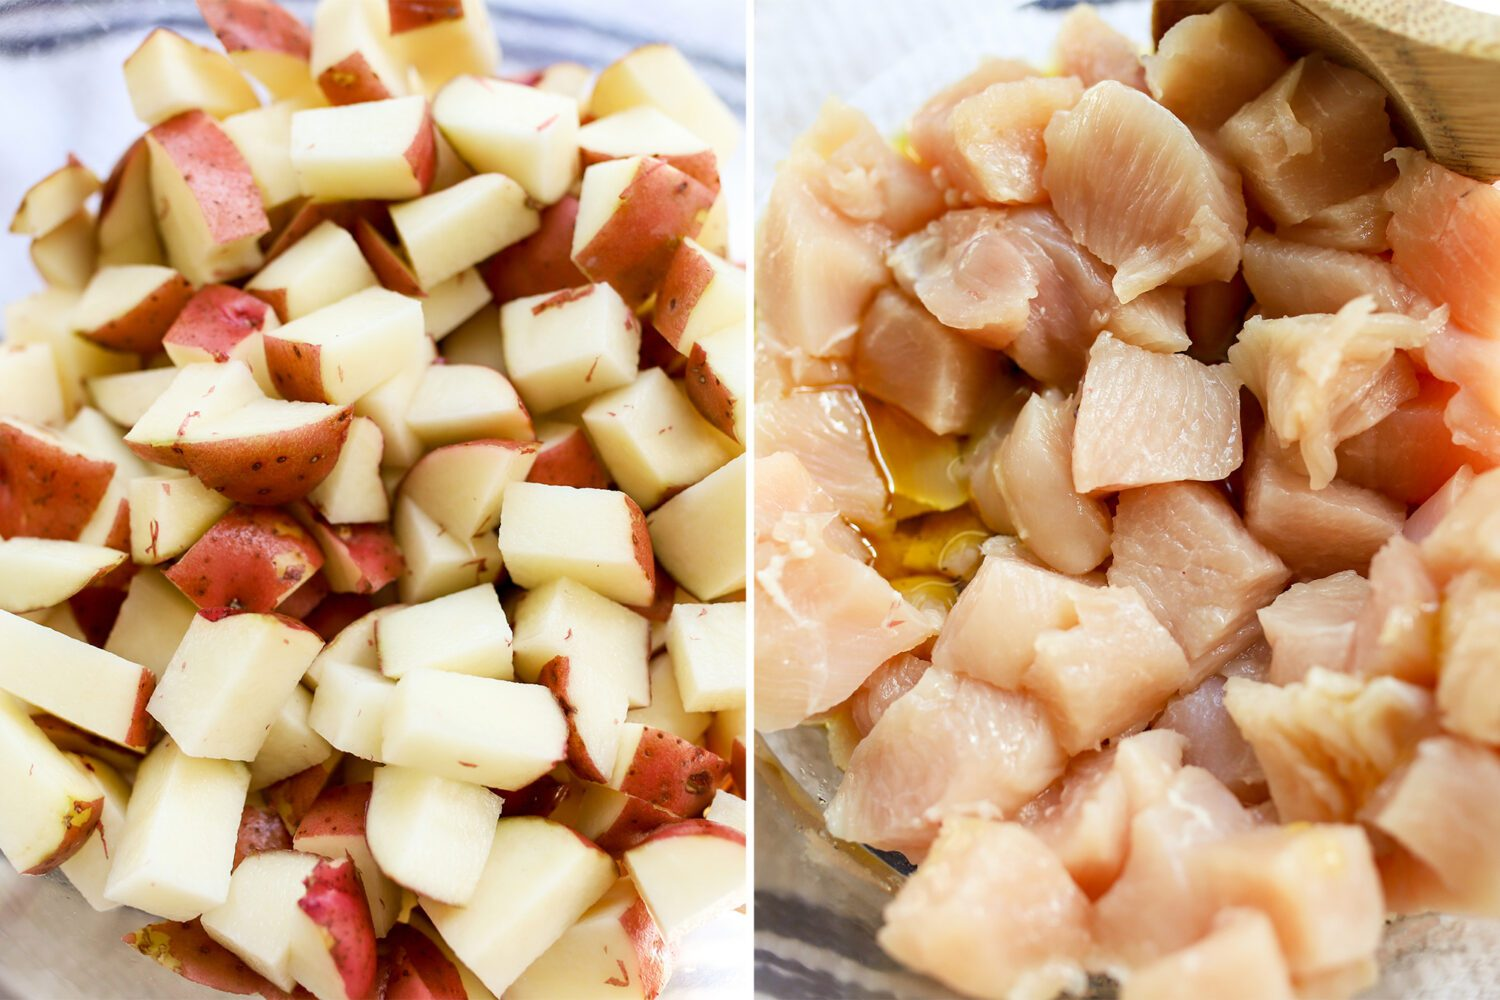 diced potatoes and diced chicken